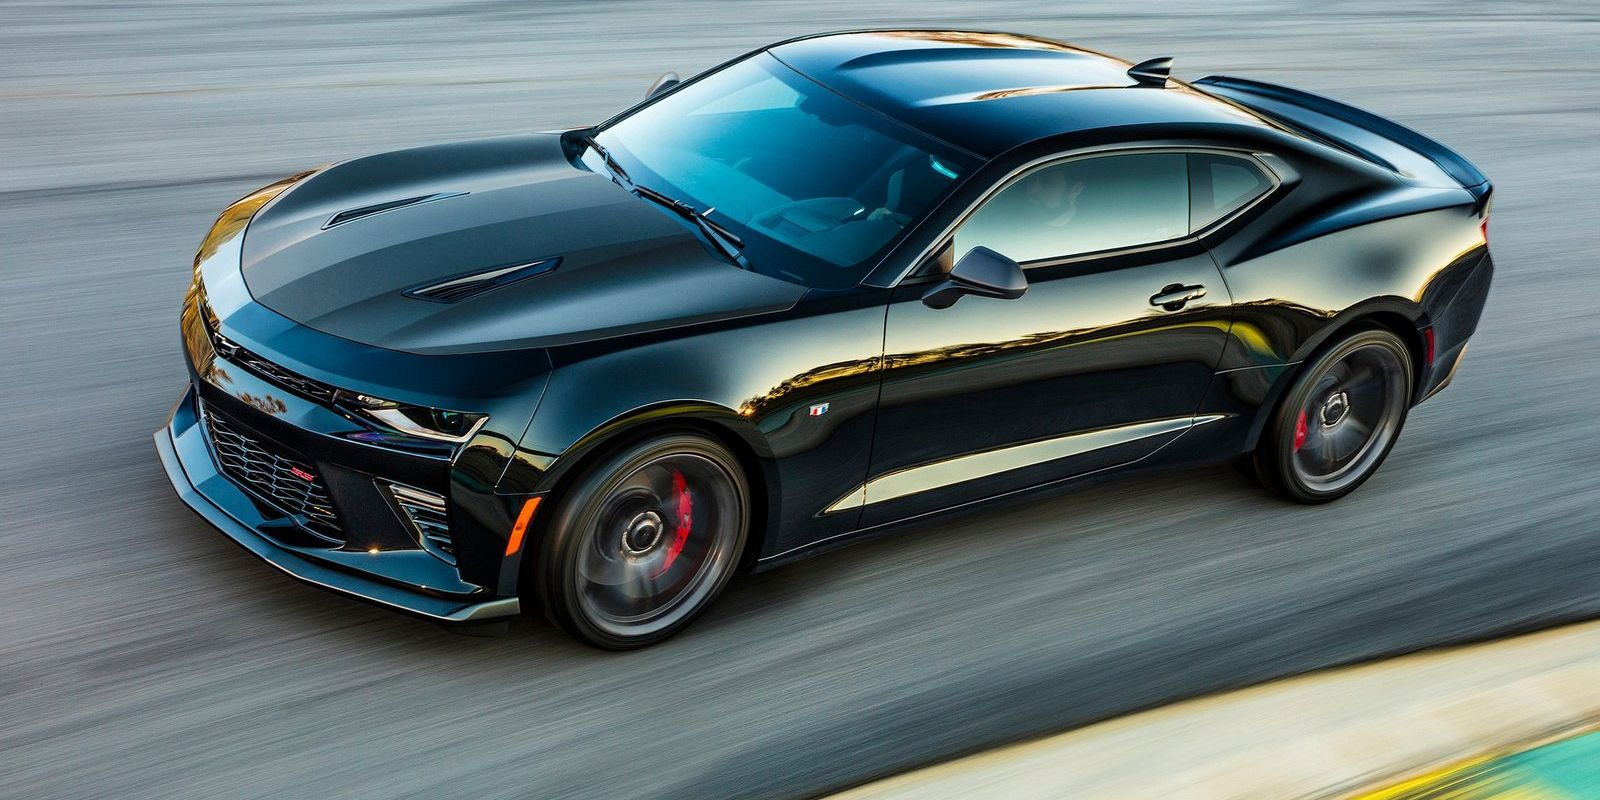 20 best performance cars under $50,000 fastest cars under $50k in 2018image